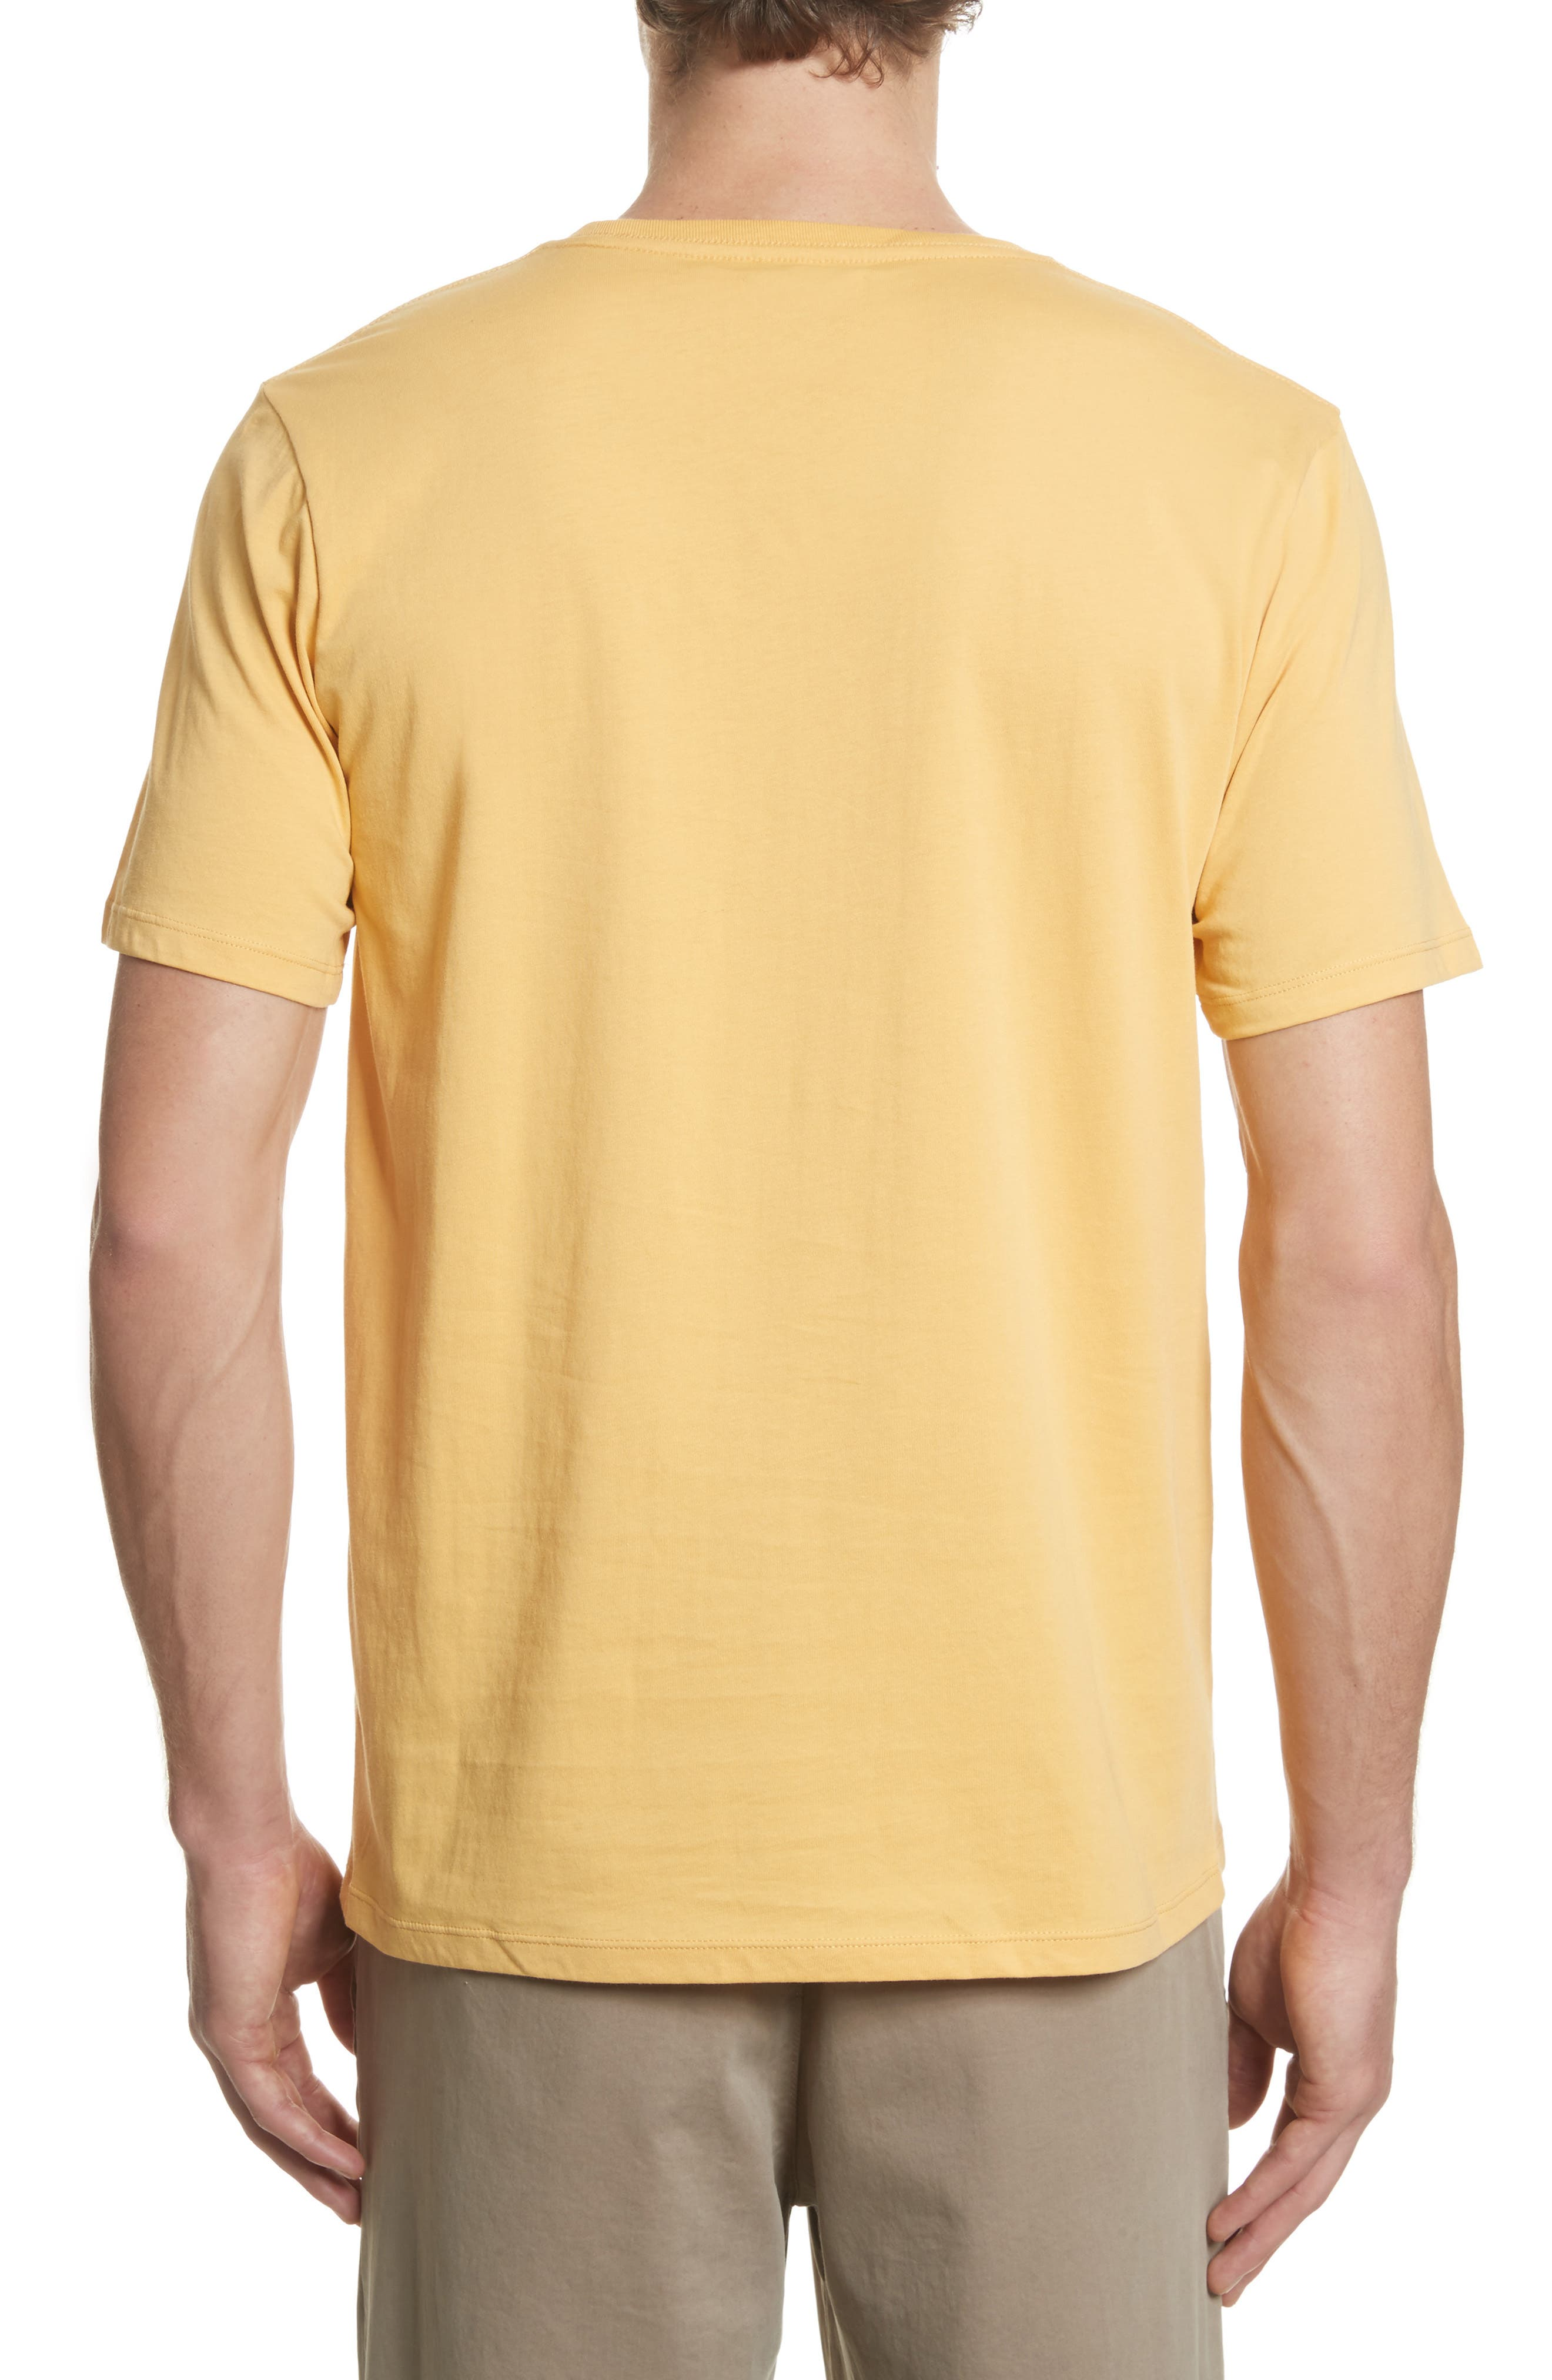 New City Graphic T-Shirt,                             Alternate thumbnail 2, color,                             Dusty Amber